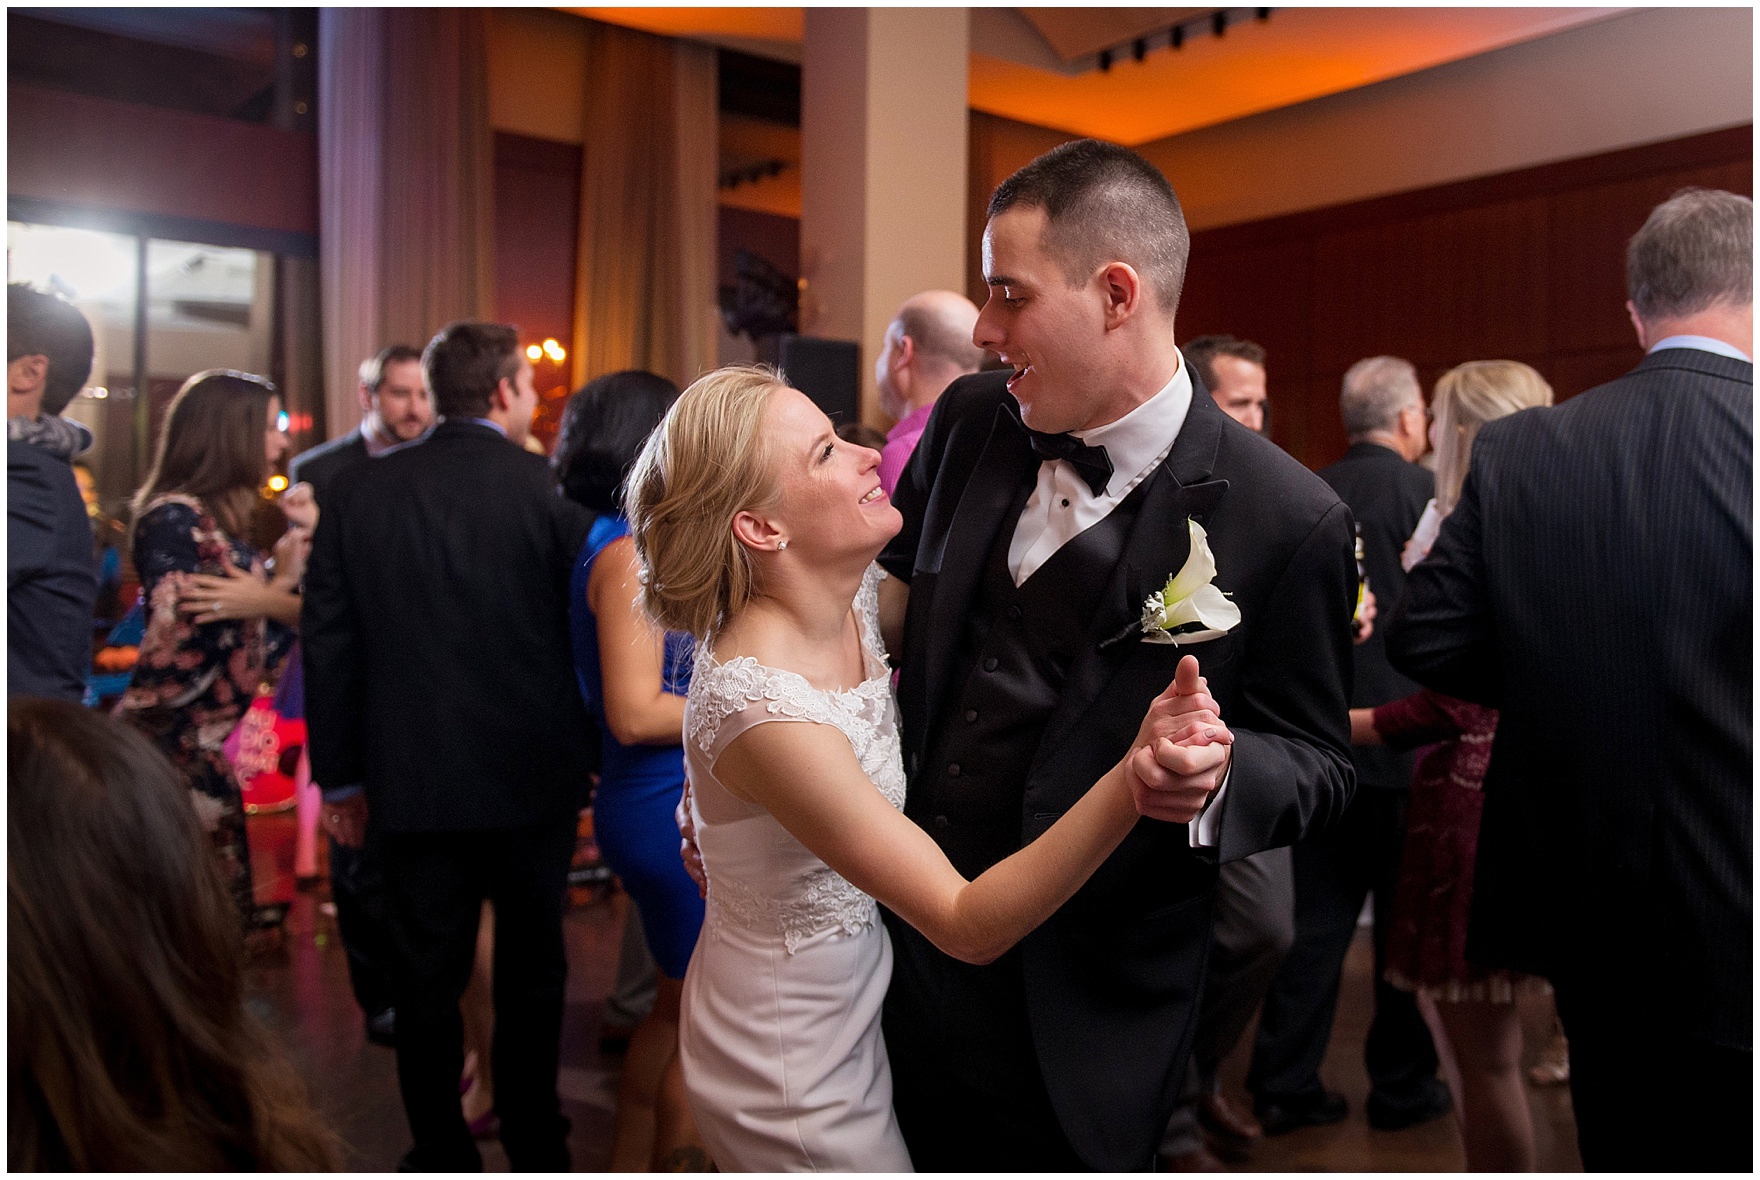 Guests dance during a Newberry Library Chicago wedding reception.